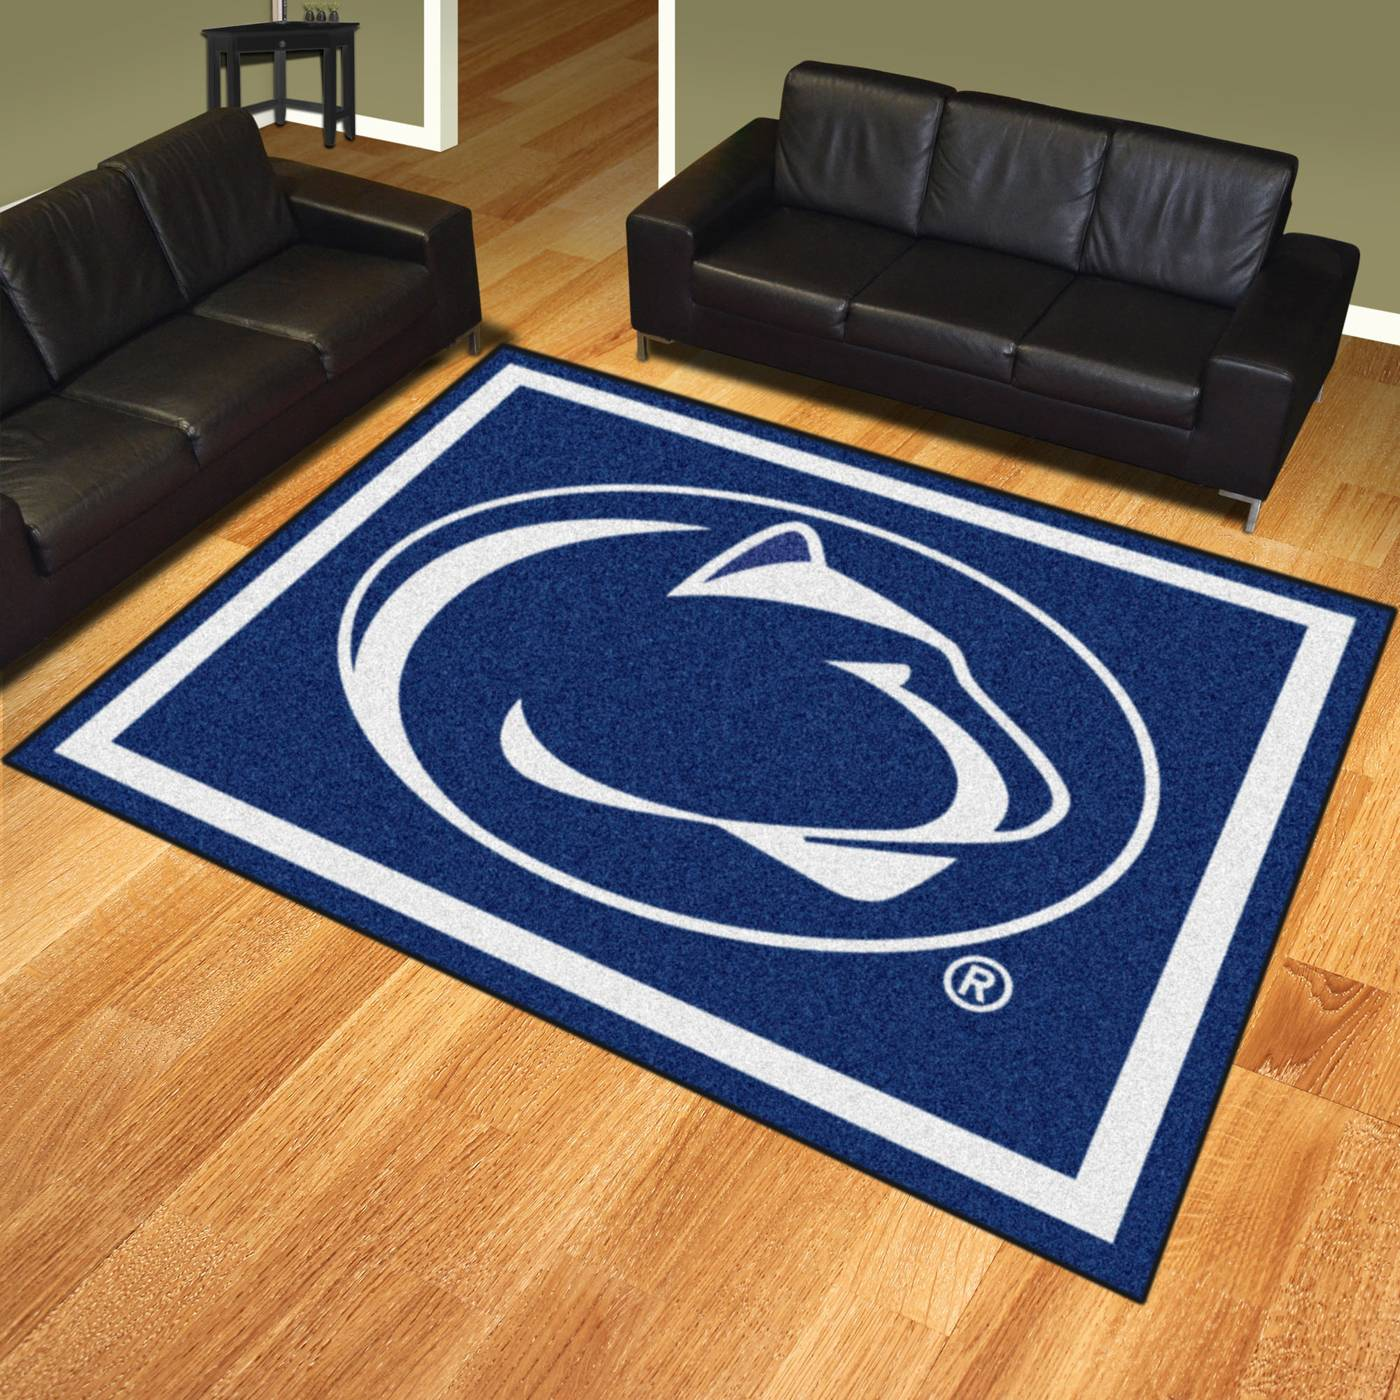 Penn State Nittany Lions 8 X 10 Area Rug